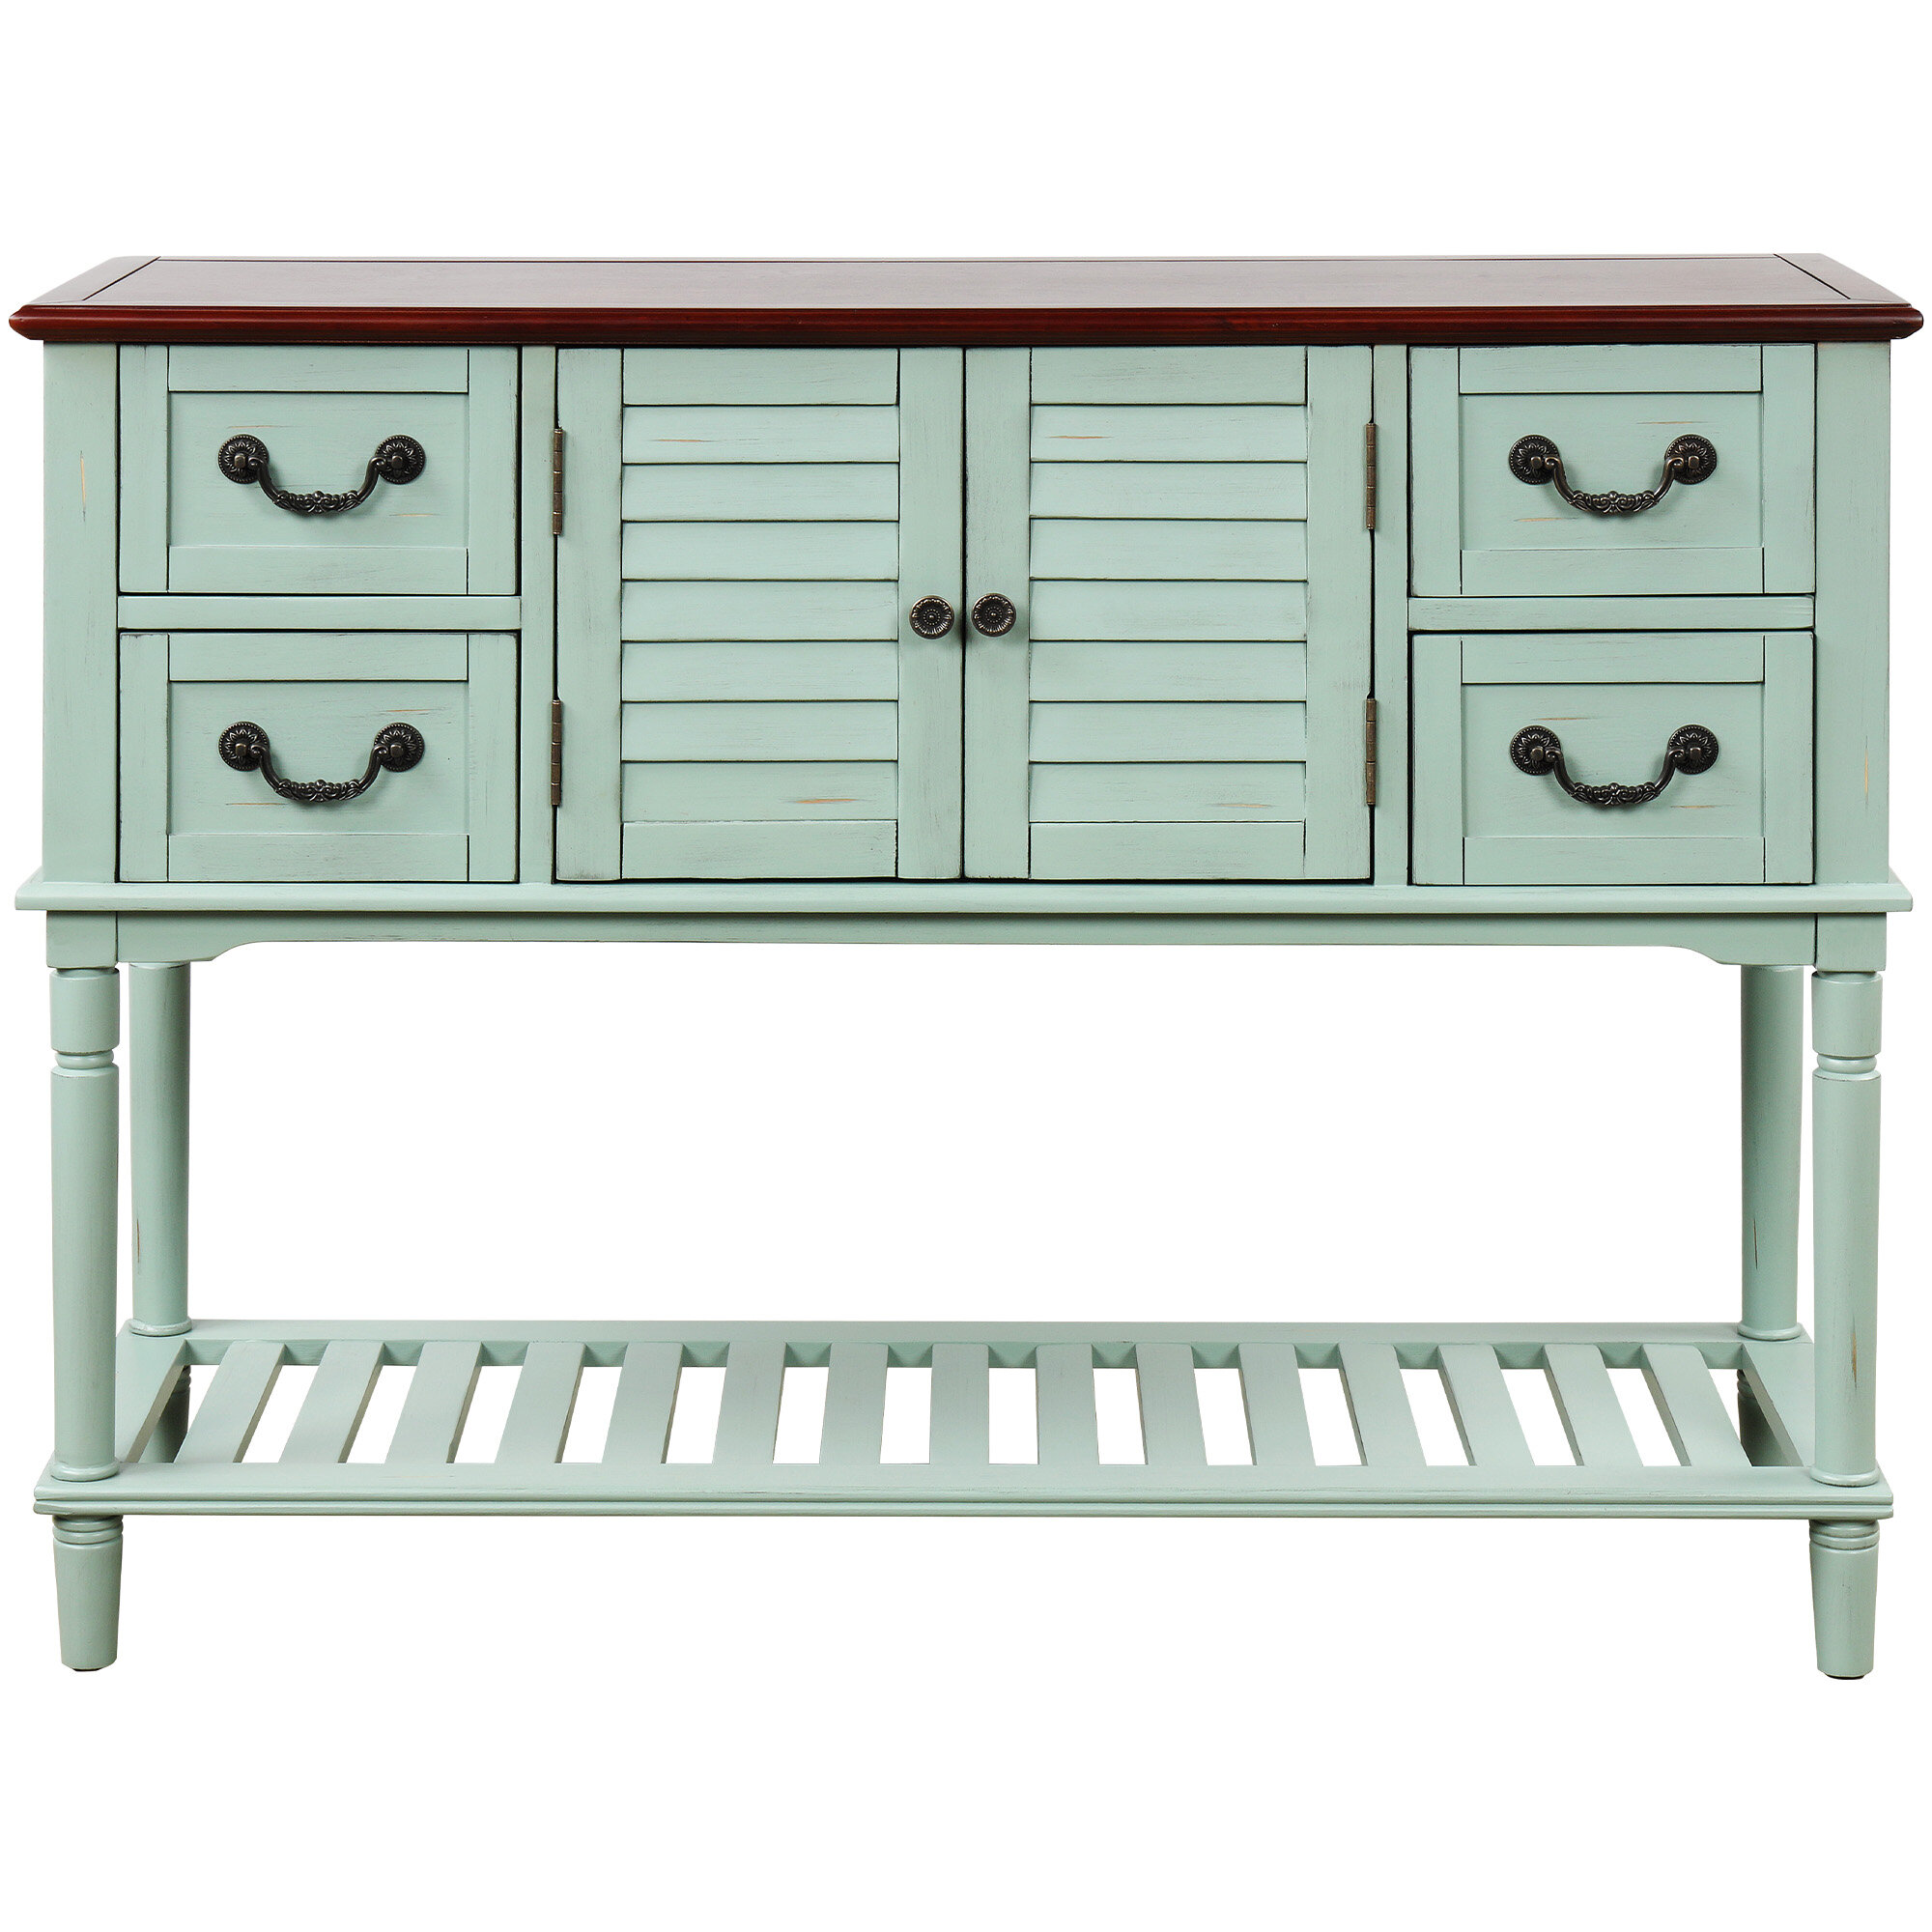 Picture of: Longshore Tides Console Table Sideboard For Entryway Sofa Table With Shutter Doors And 4 Storage Drawers Antique Navy Wayfair Ca